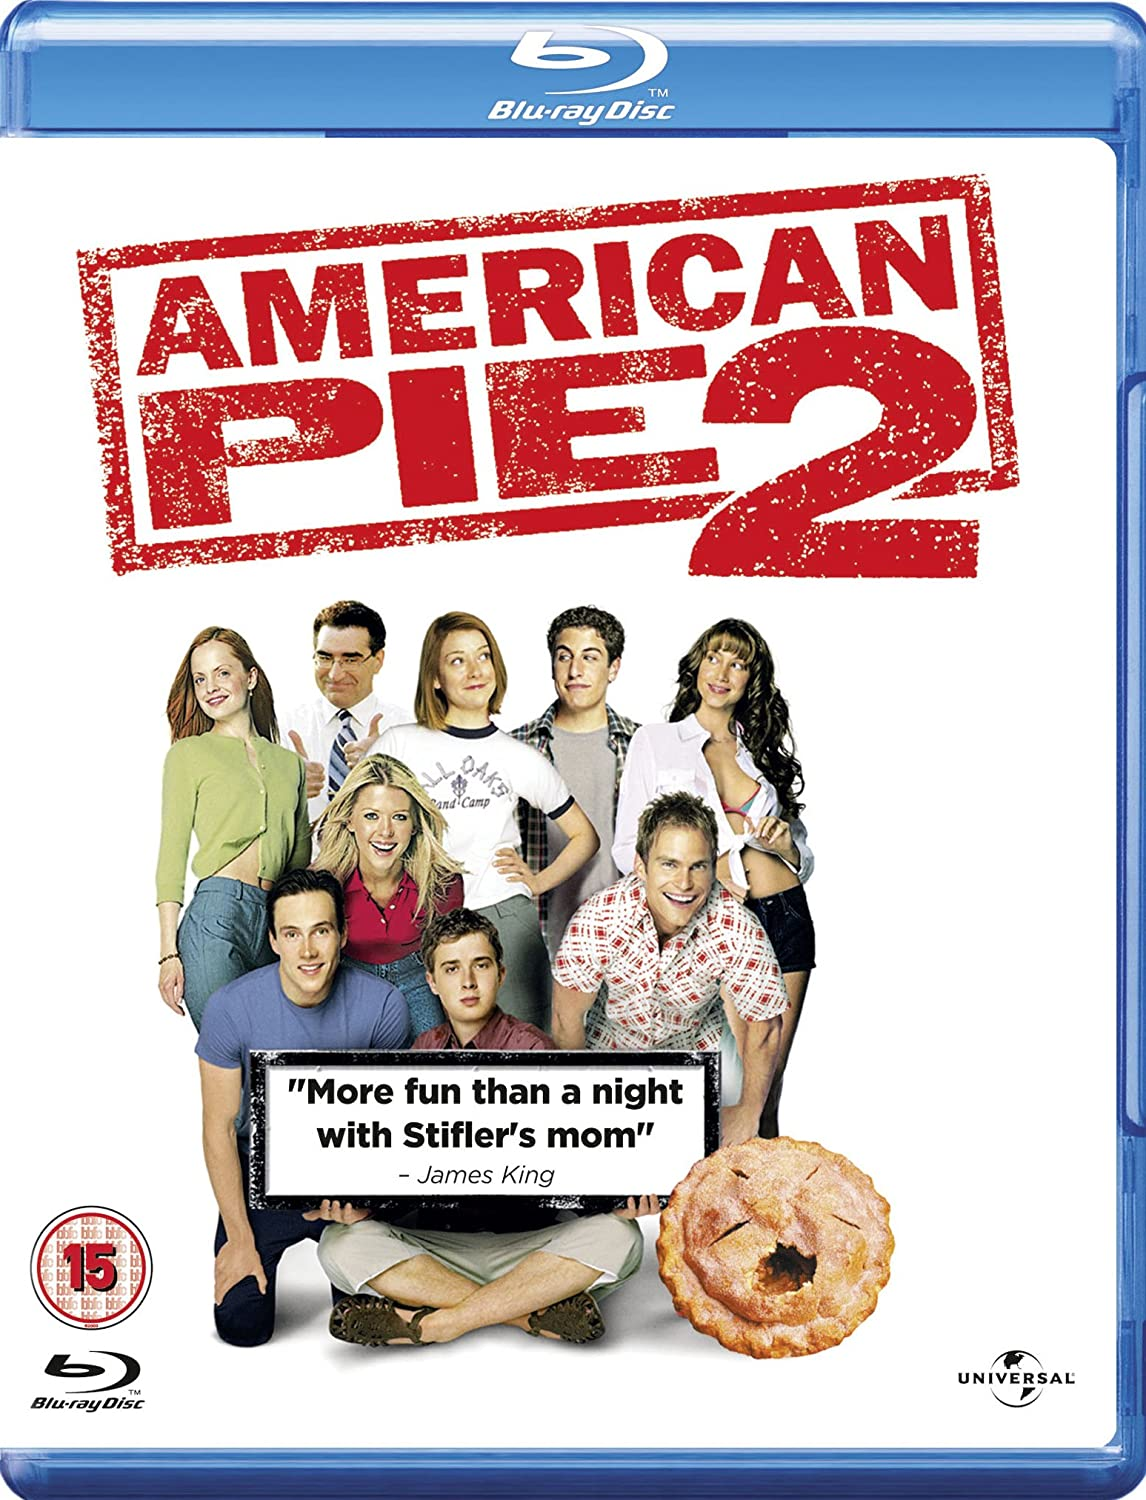 American Pie 2 Blu Ray 2001 Amazon Co Uk Jason Biggs Chris Klein Alyson Hannigan James B Rogers Jason Biggs Chris Klein Dvd Blu Ray